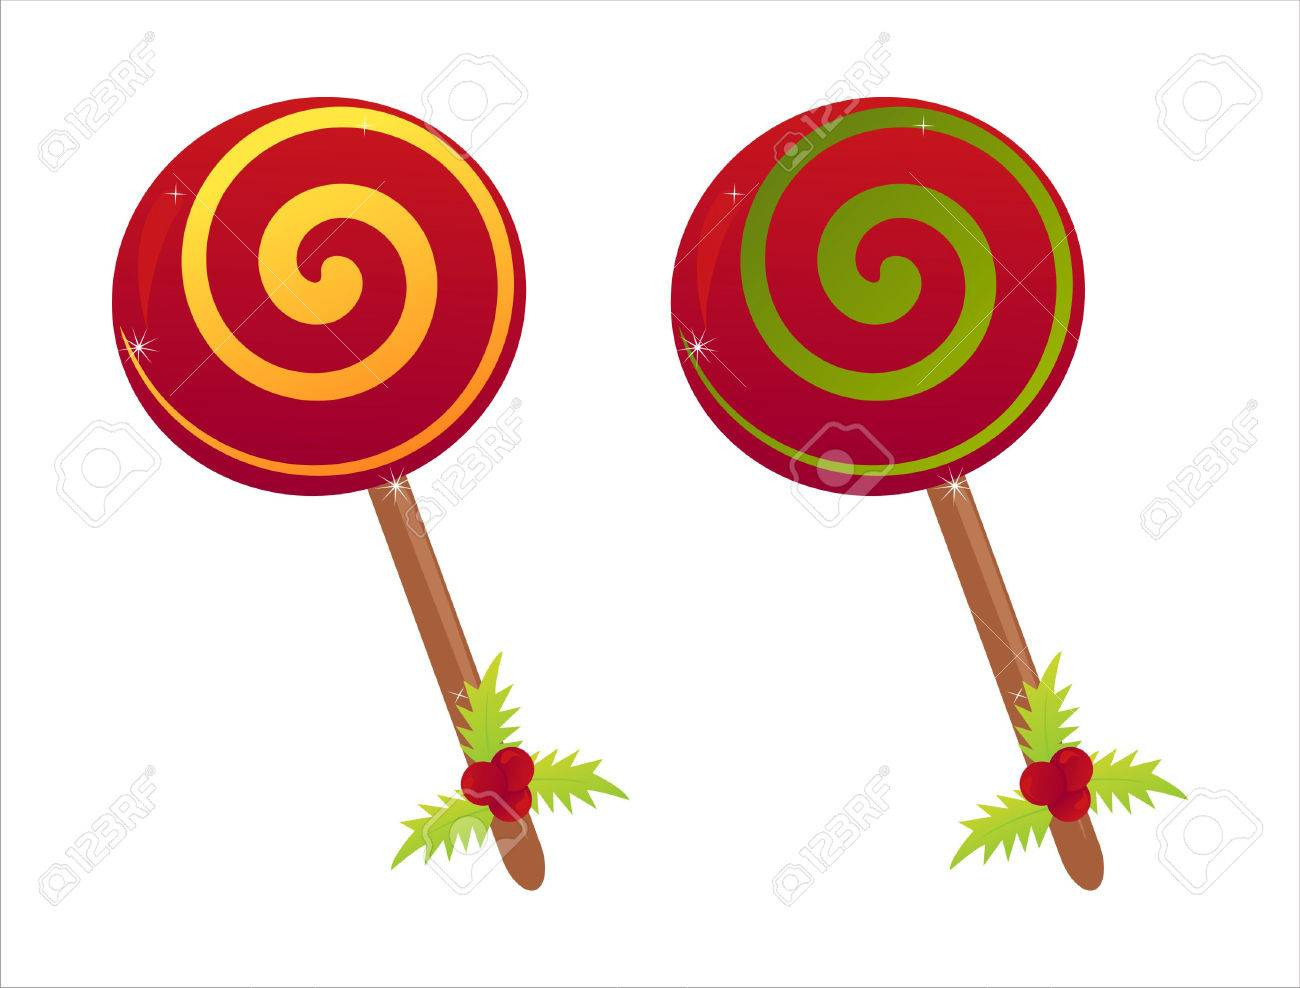 Set Of 2 Christmas Lollipops Royalty Free Cliparts Vectors And Stock Illustration Image 8361035